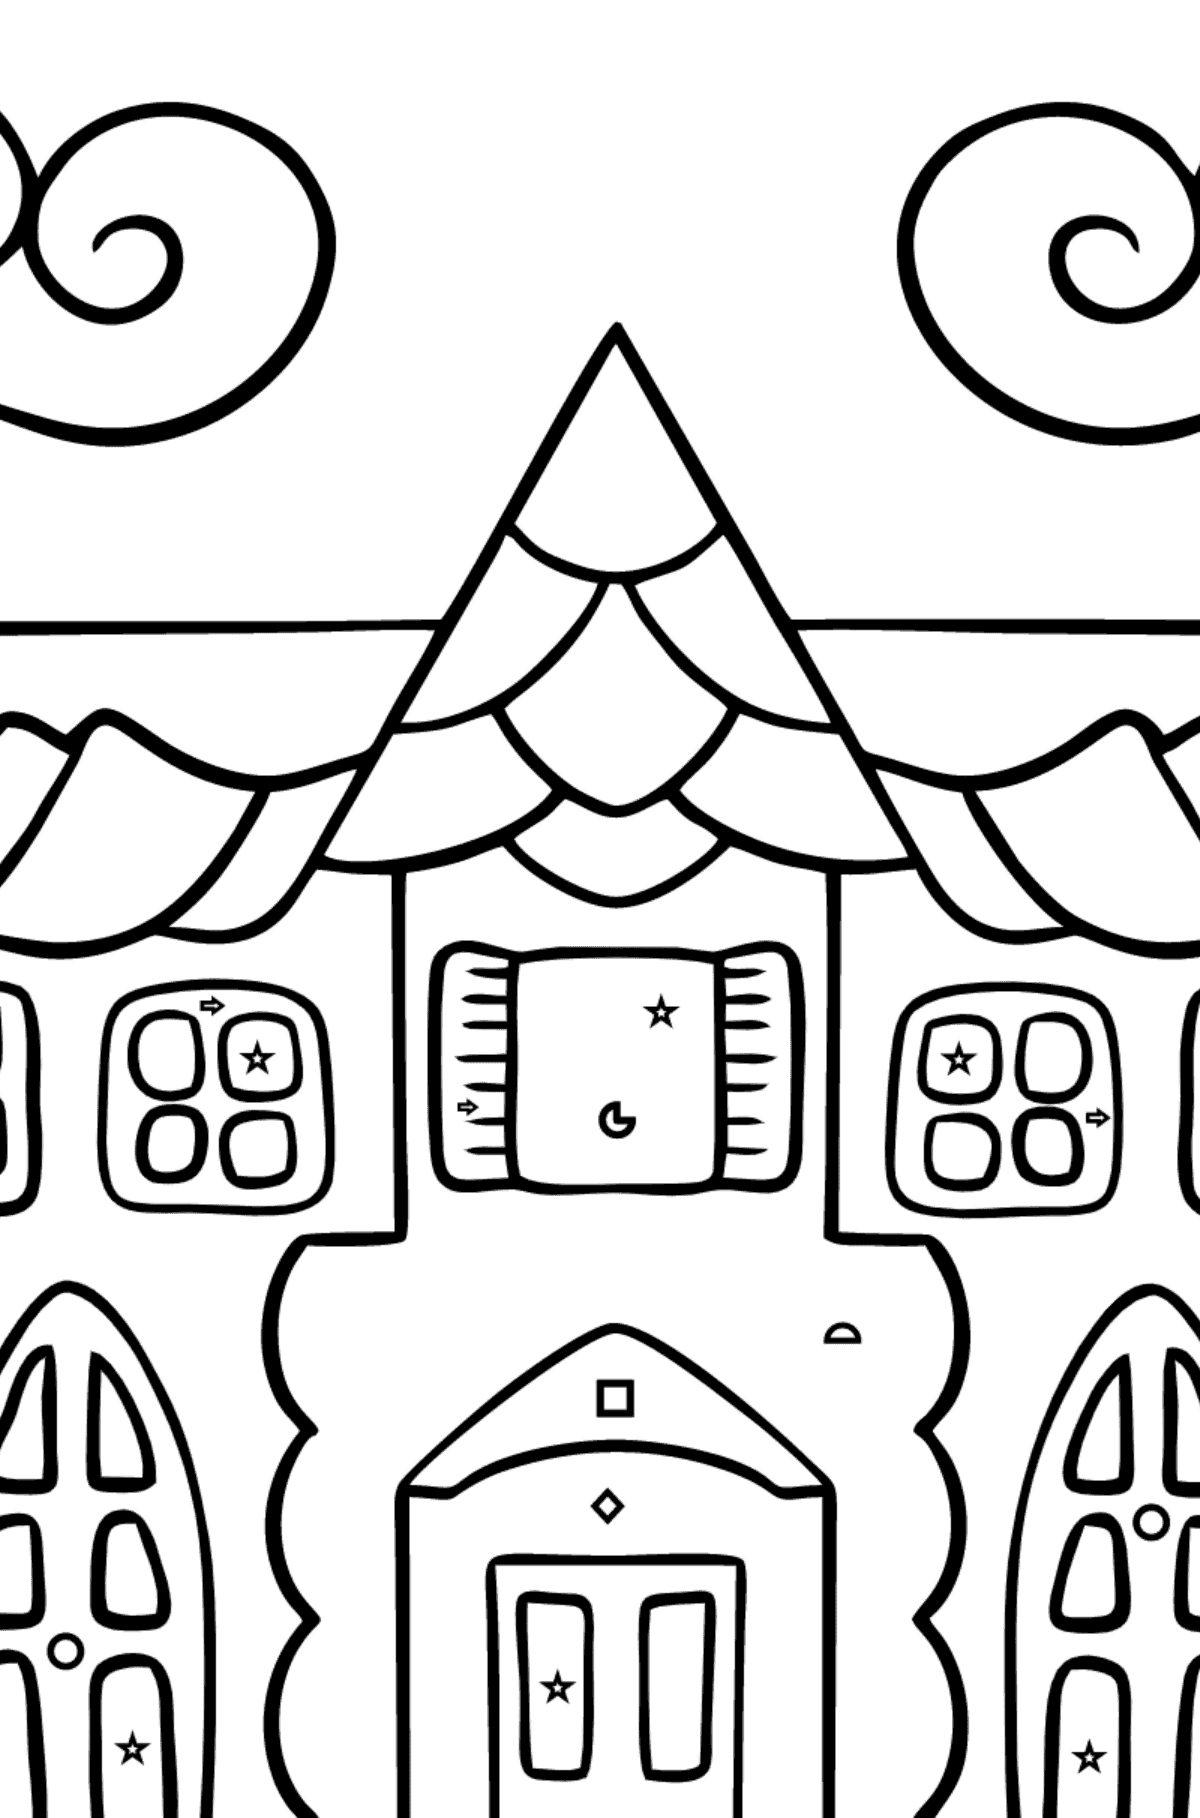 Coloring Page - A House in an Enchanted Kingdom for Kids  - Color by Geometric Shapes